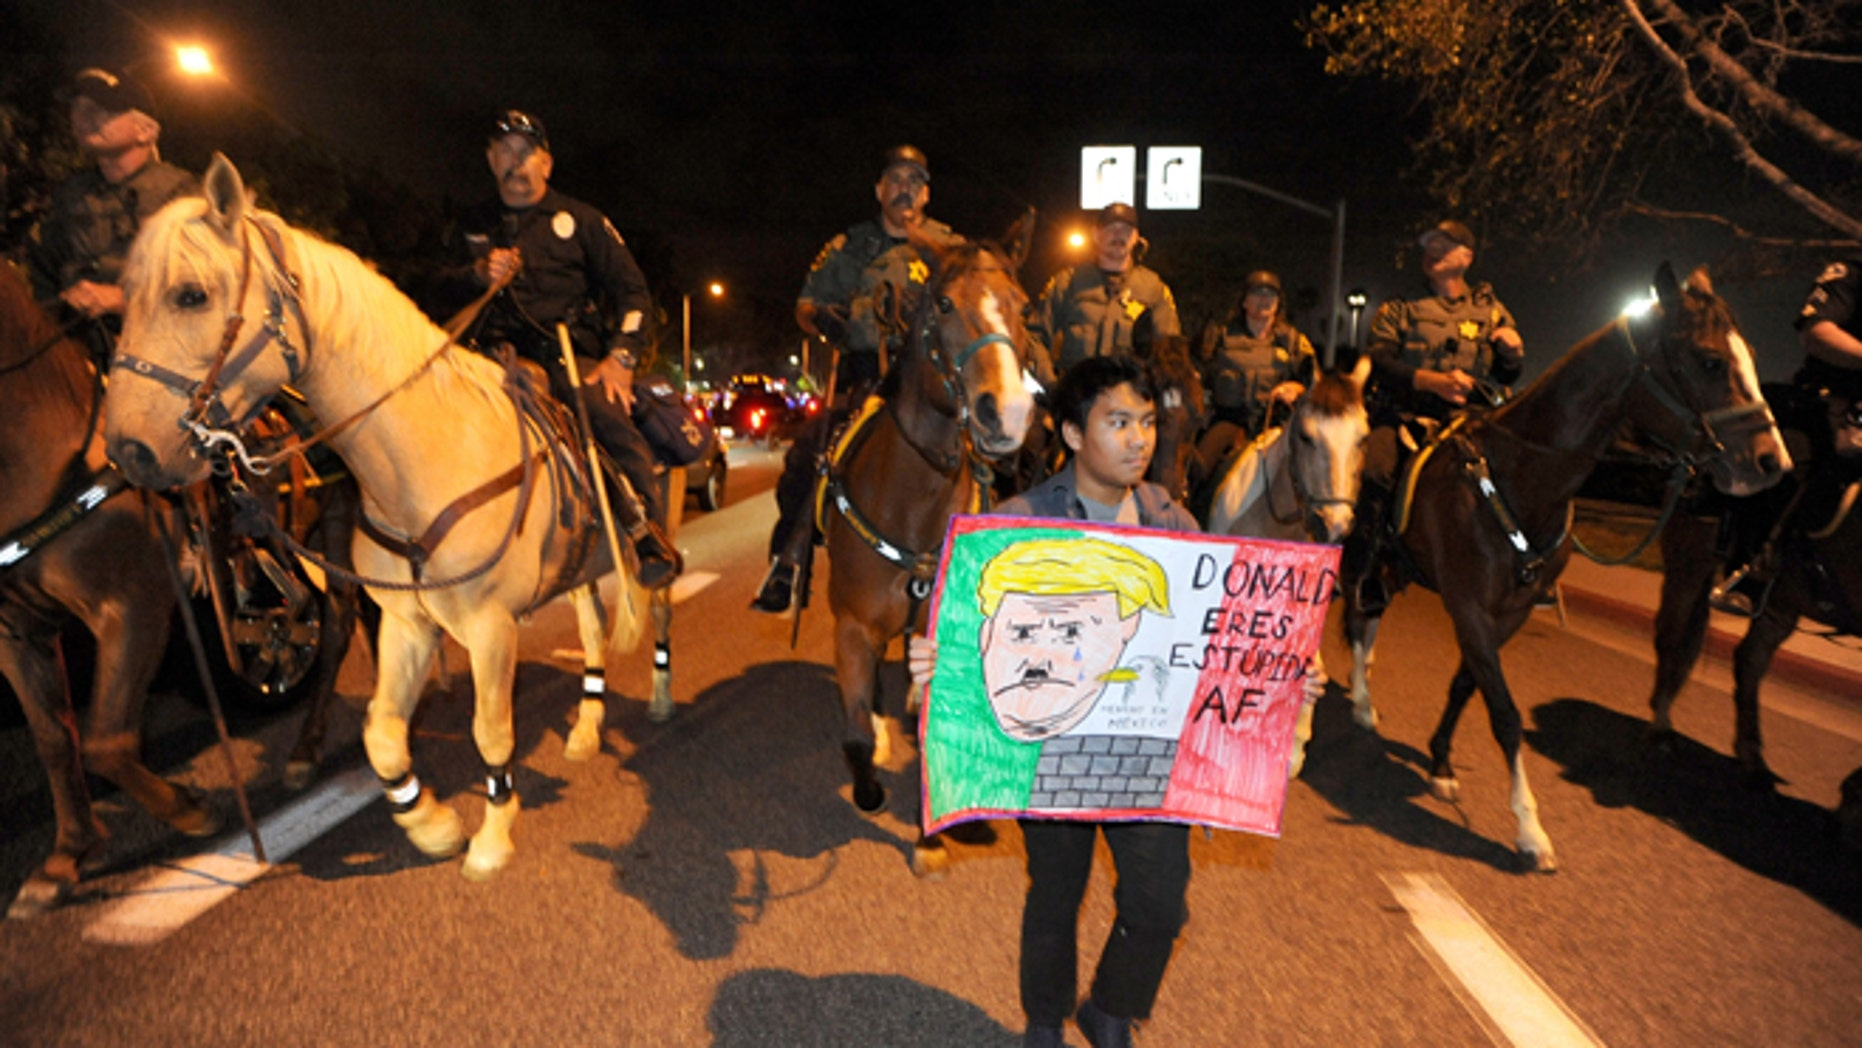 Police on horseback and on foot clear the anti-Trump demonstrators on Thursday, April 28, 2016, in Costa Mesa, Calif.